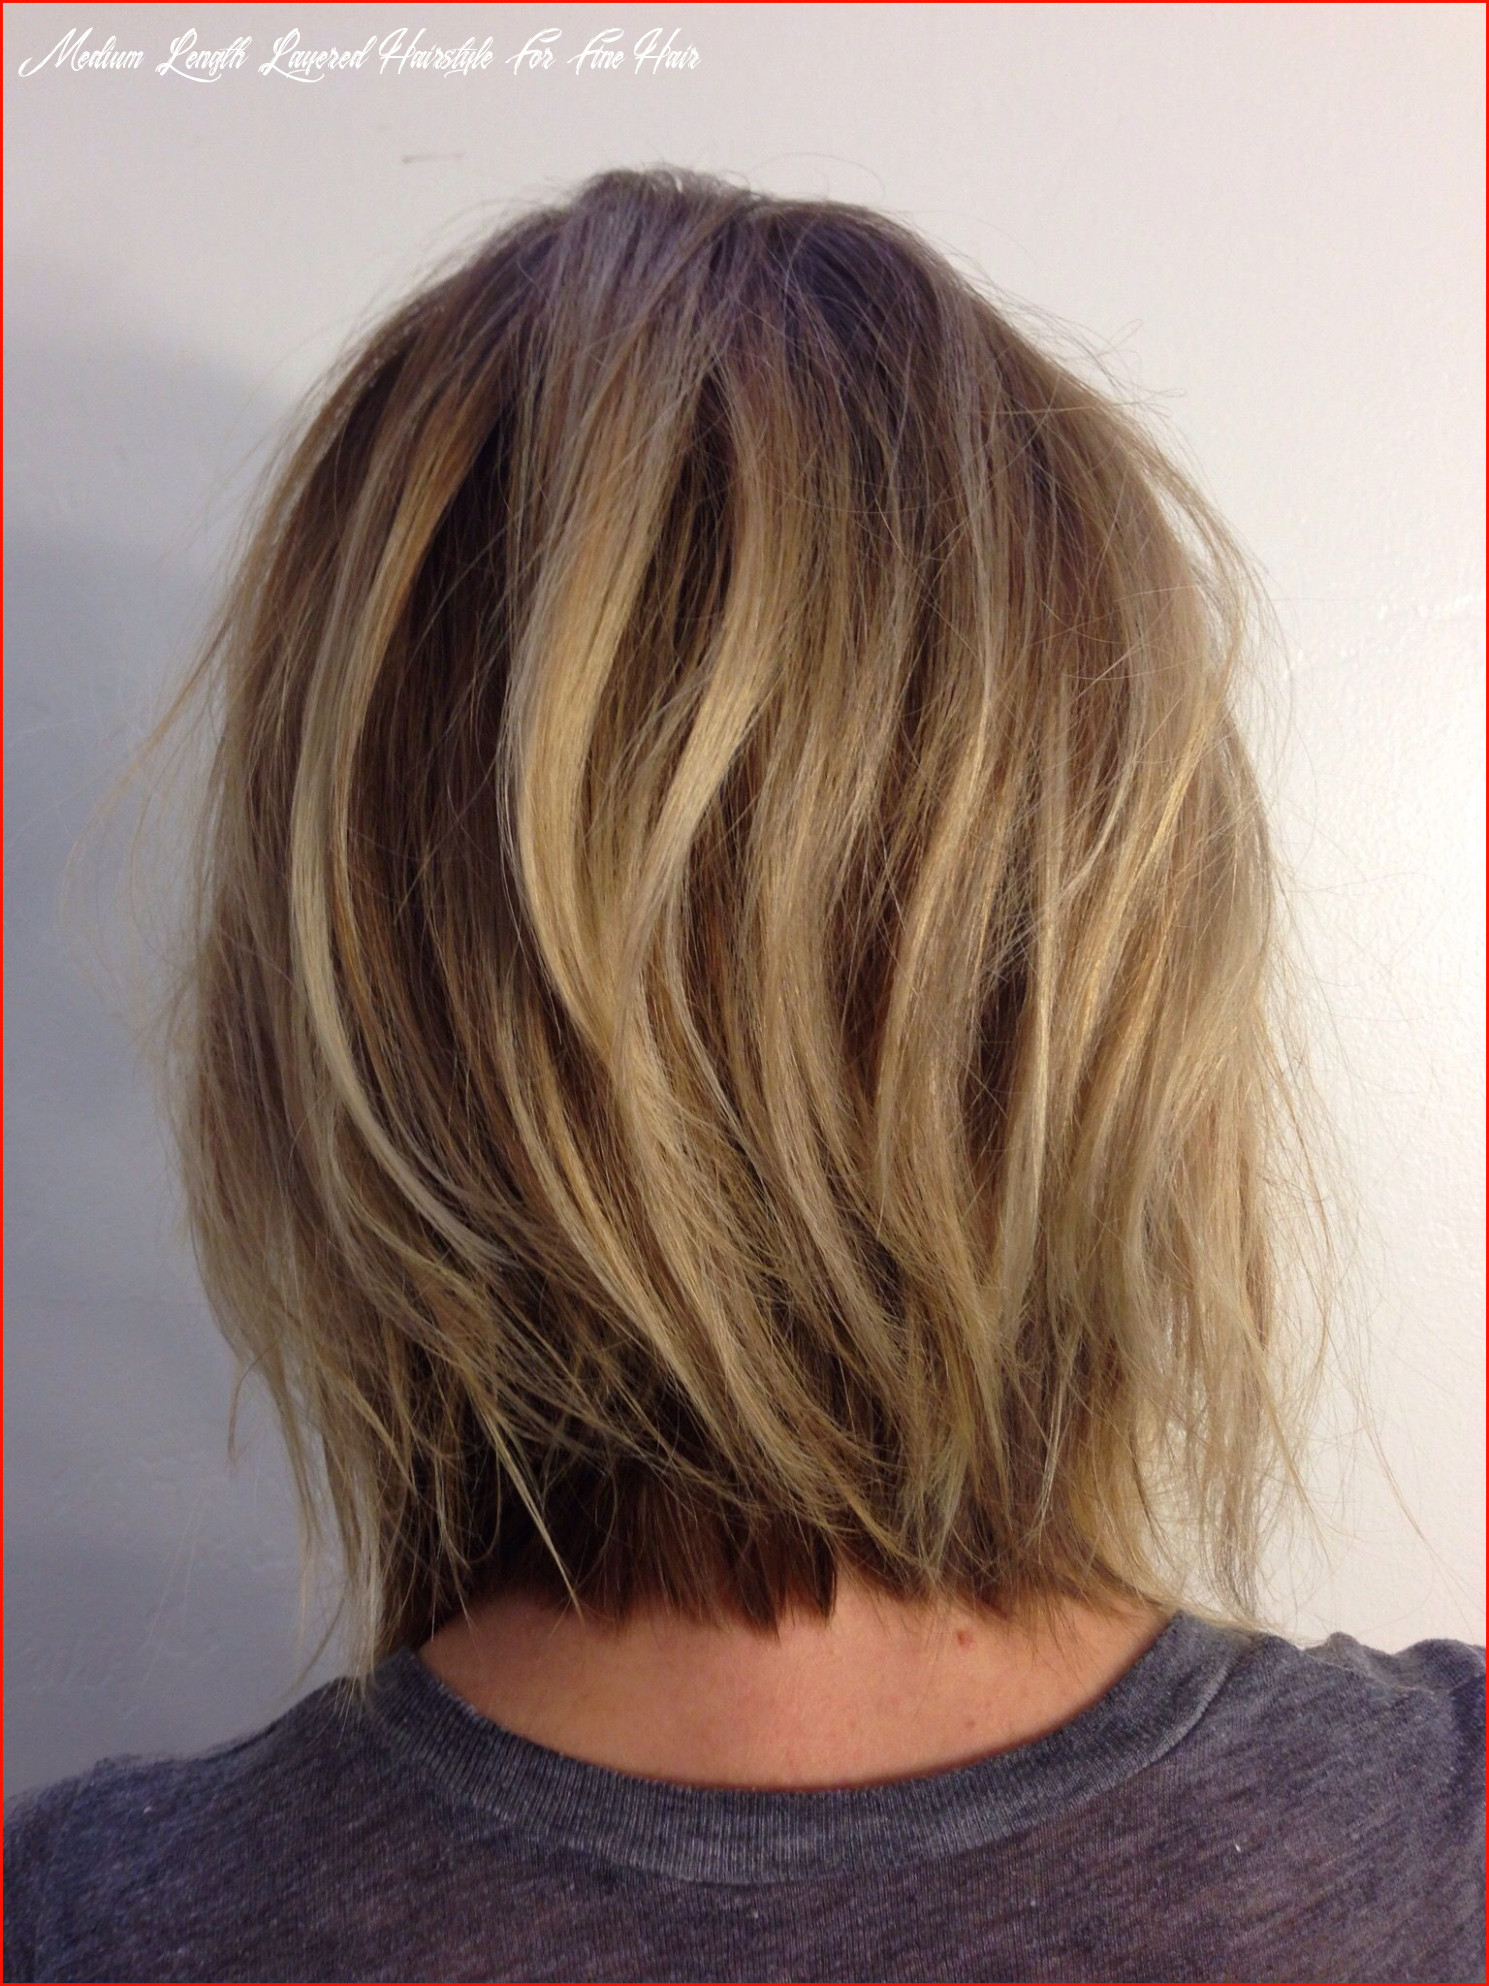 Top layered hairstyles for fine hair medium length collection of